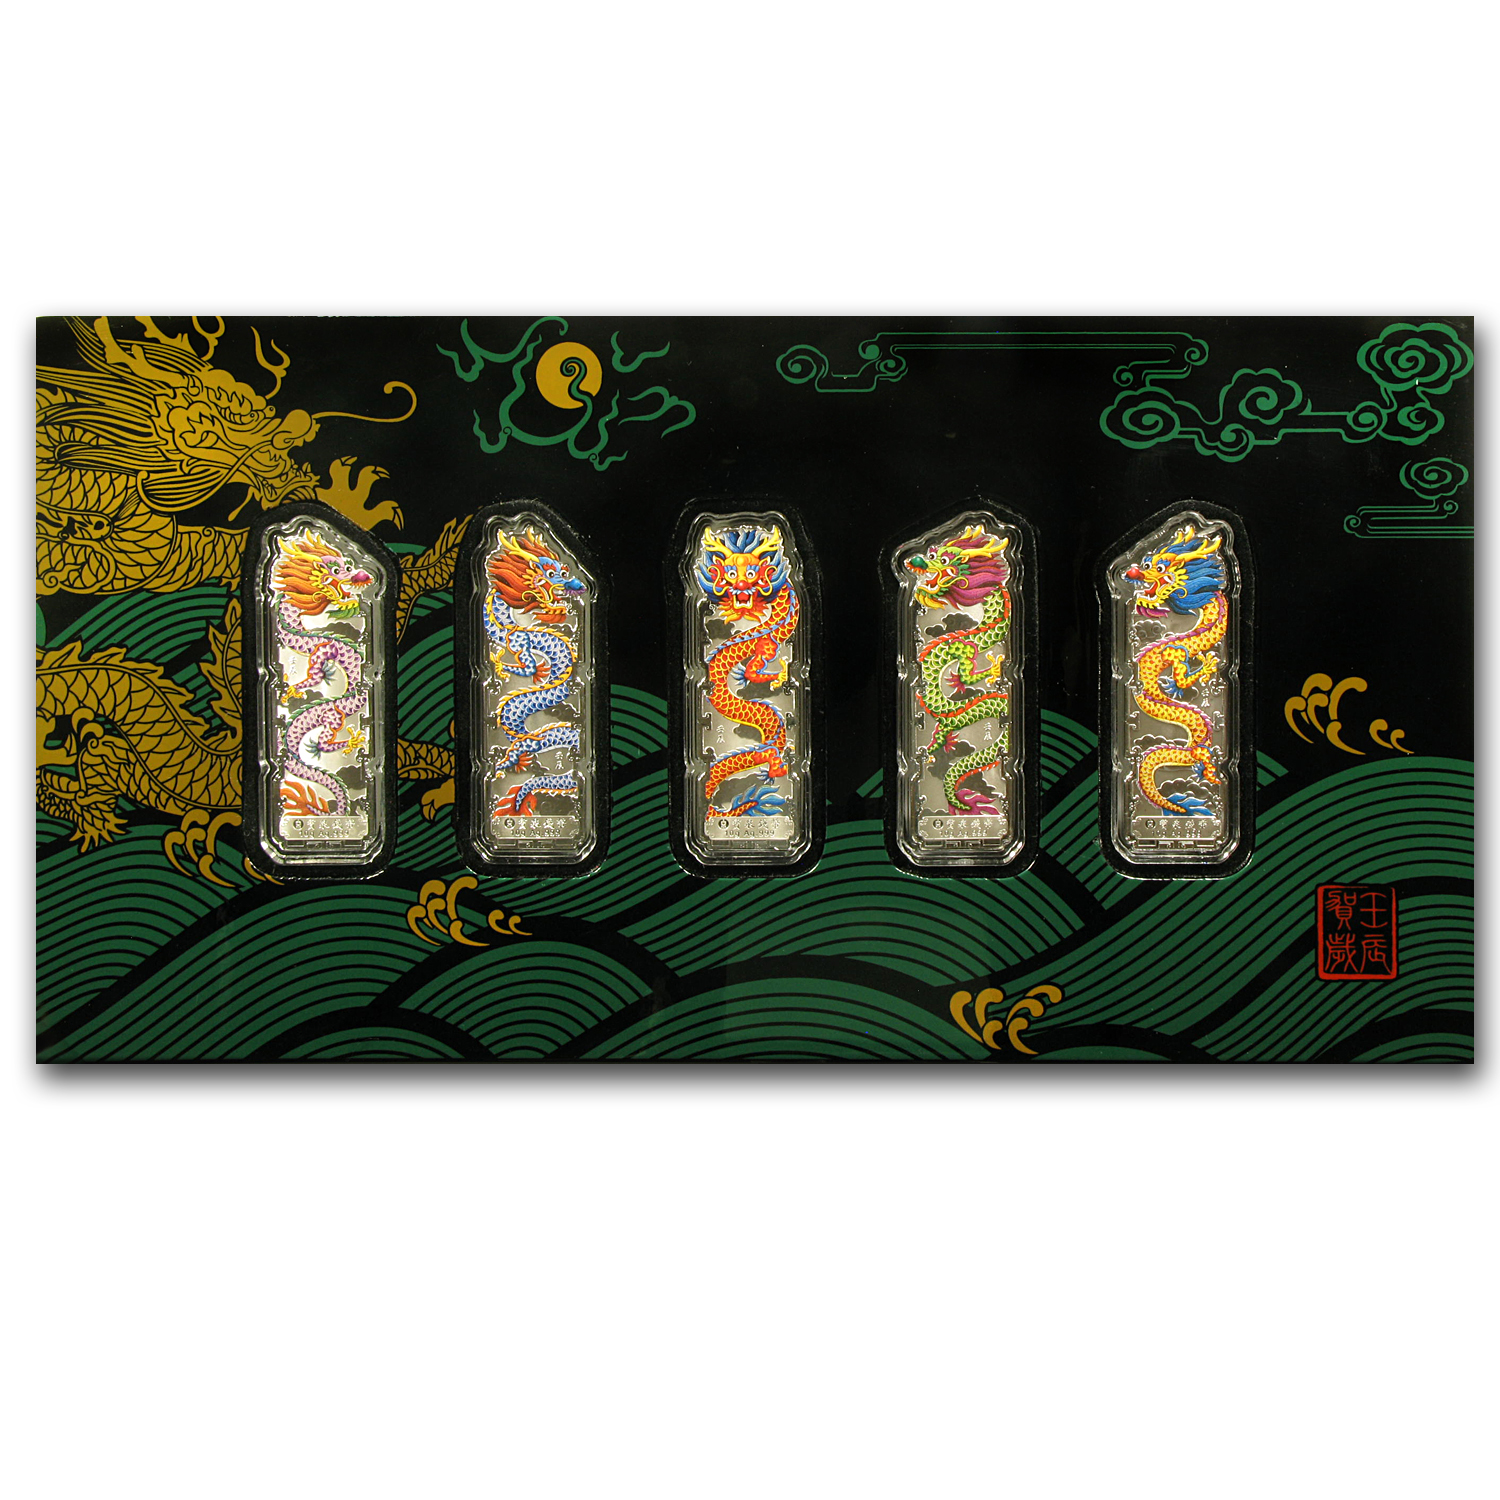 10 gram Silver Bars - Year of the Dragon (2012/Colorized/5 pc.)